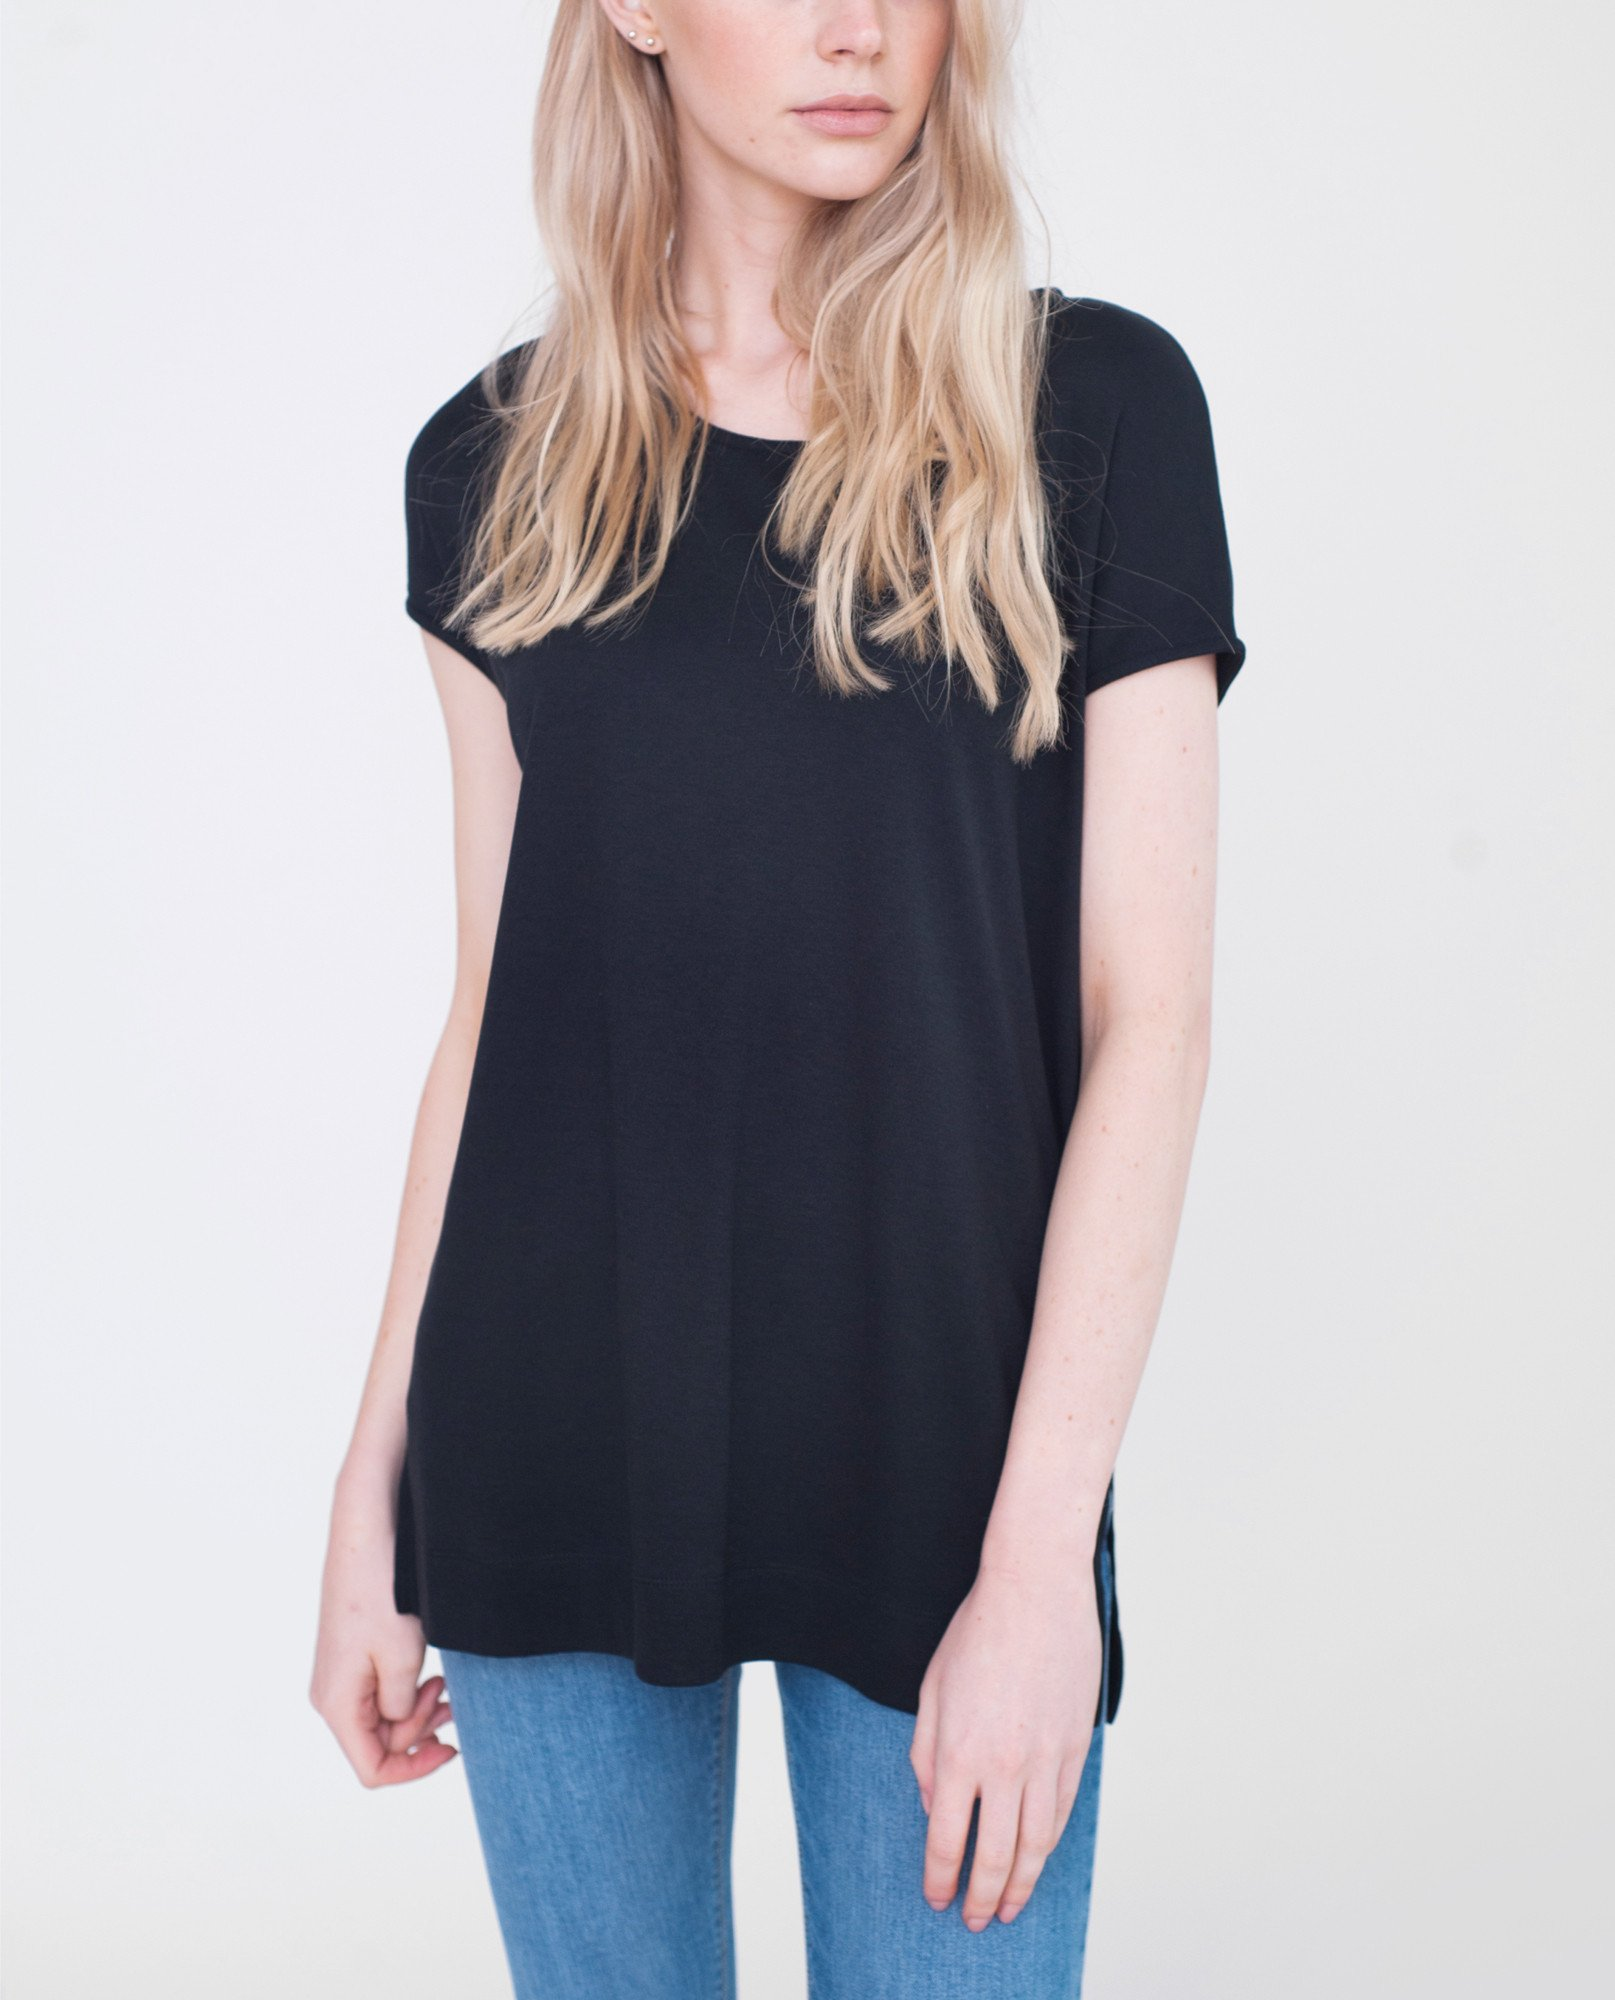 AURORA Lyocell And Cotton Top In Black from Beaumont Organic